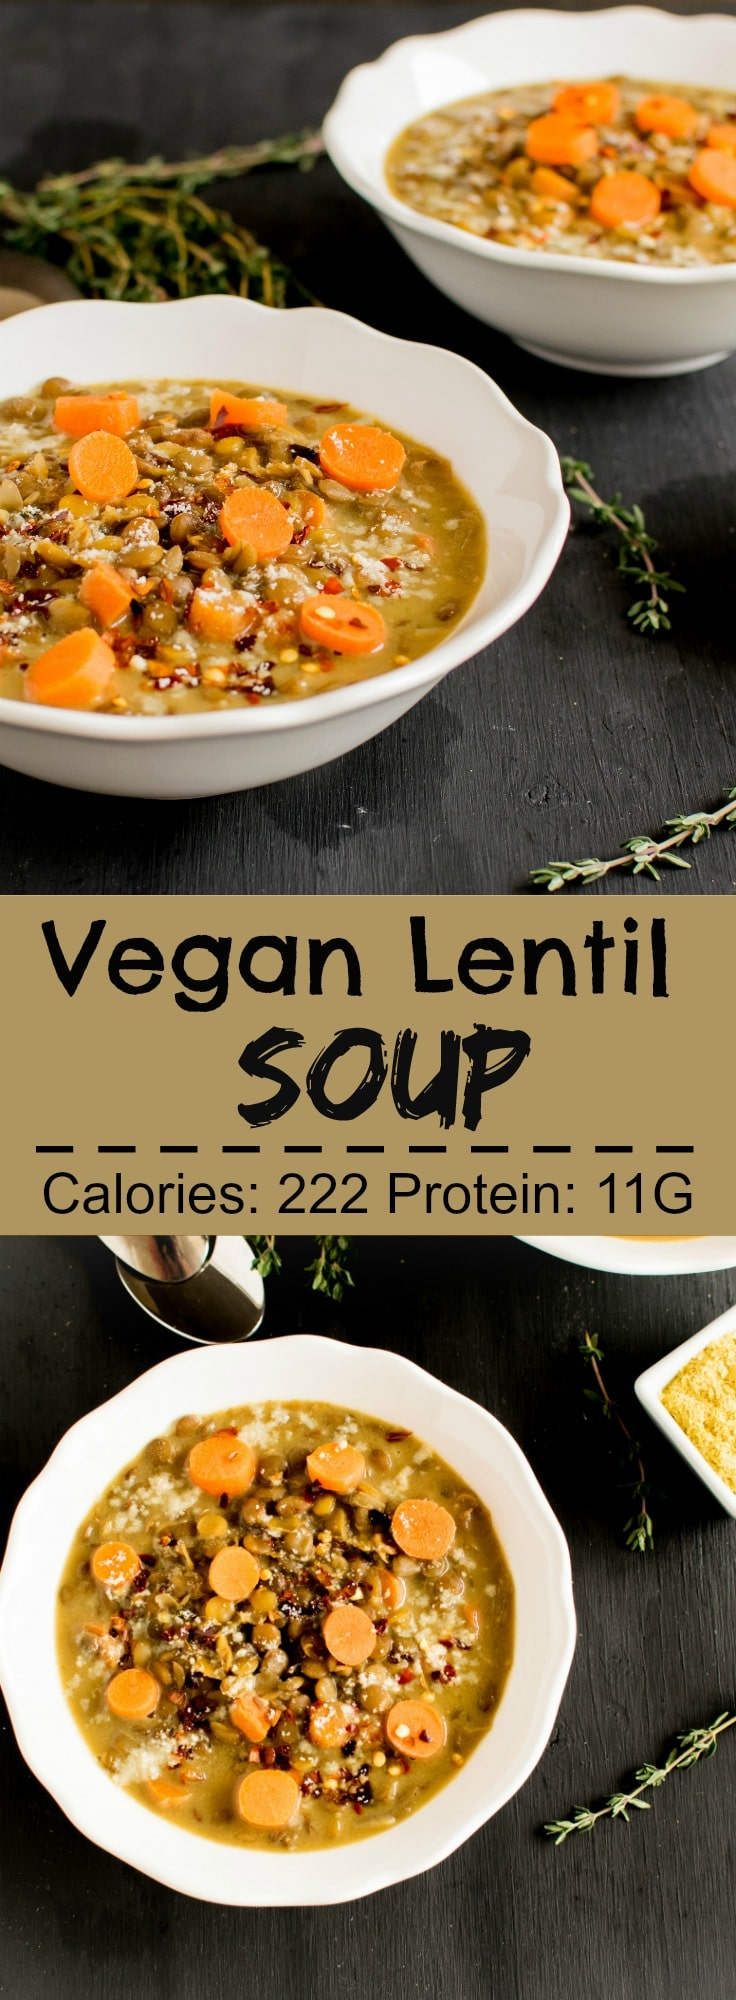 Vegan Lentil Cheese Soup - this creamy thick lentil soup flavored brilliantly with parmesan cheese is a perfect on the go meal on busy days. Can be made ahead of time in big batches | kiipfit.com